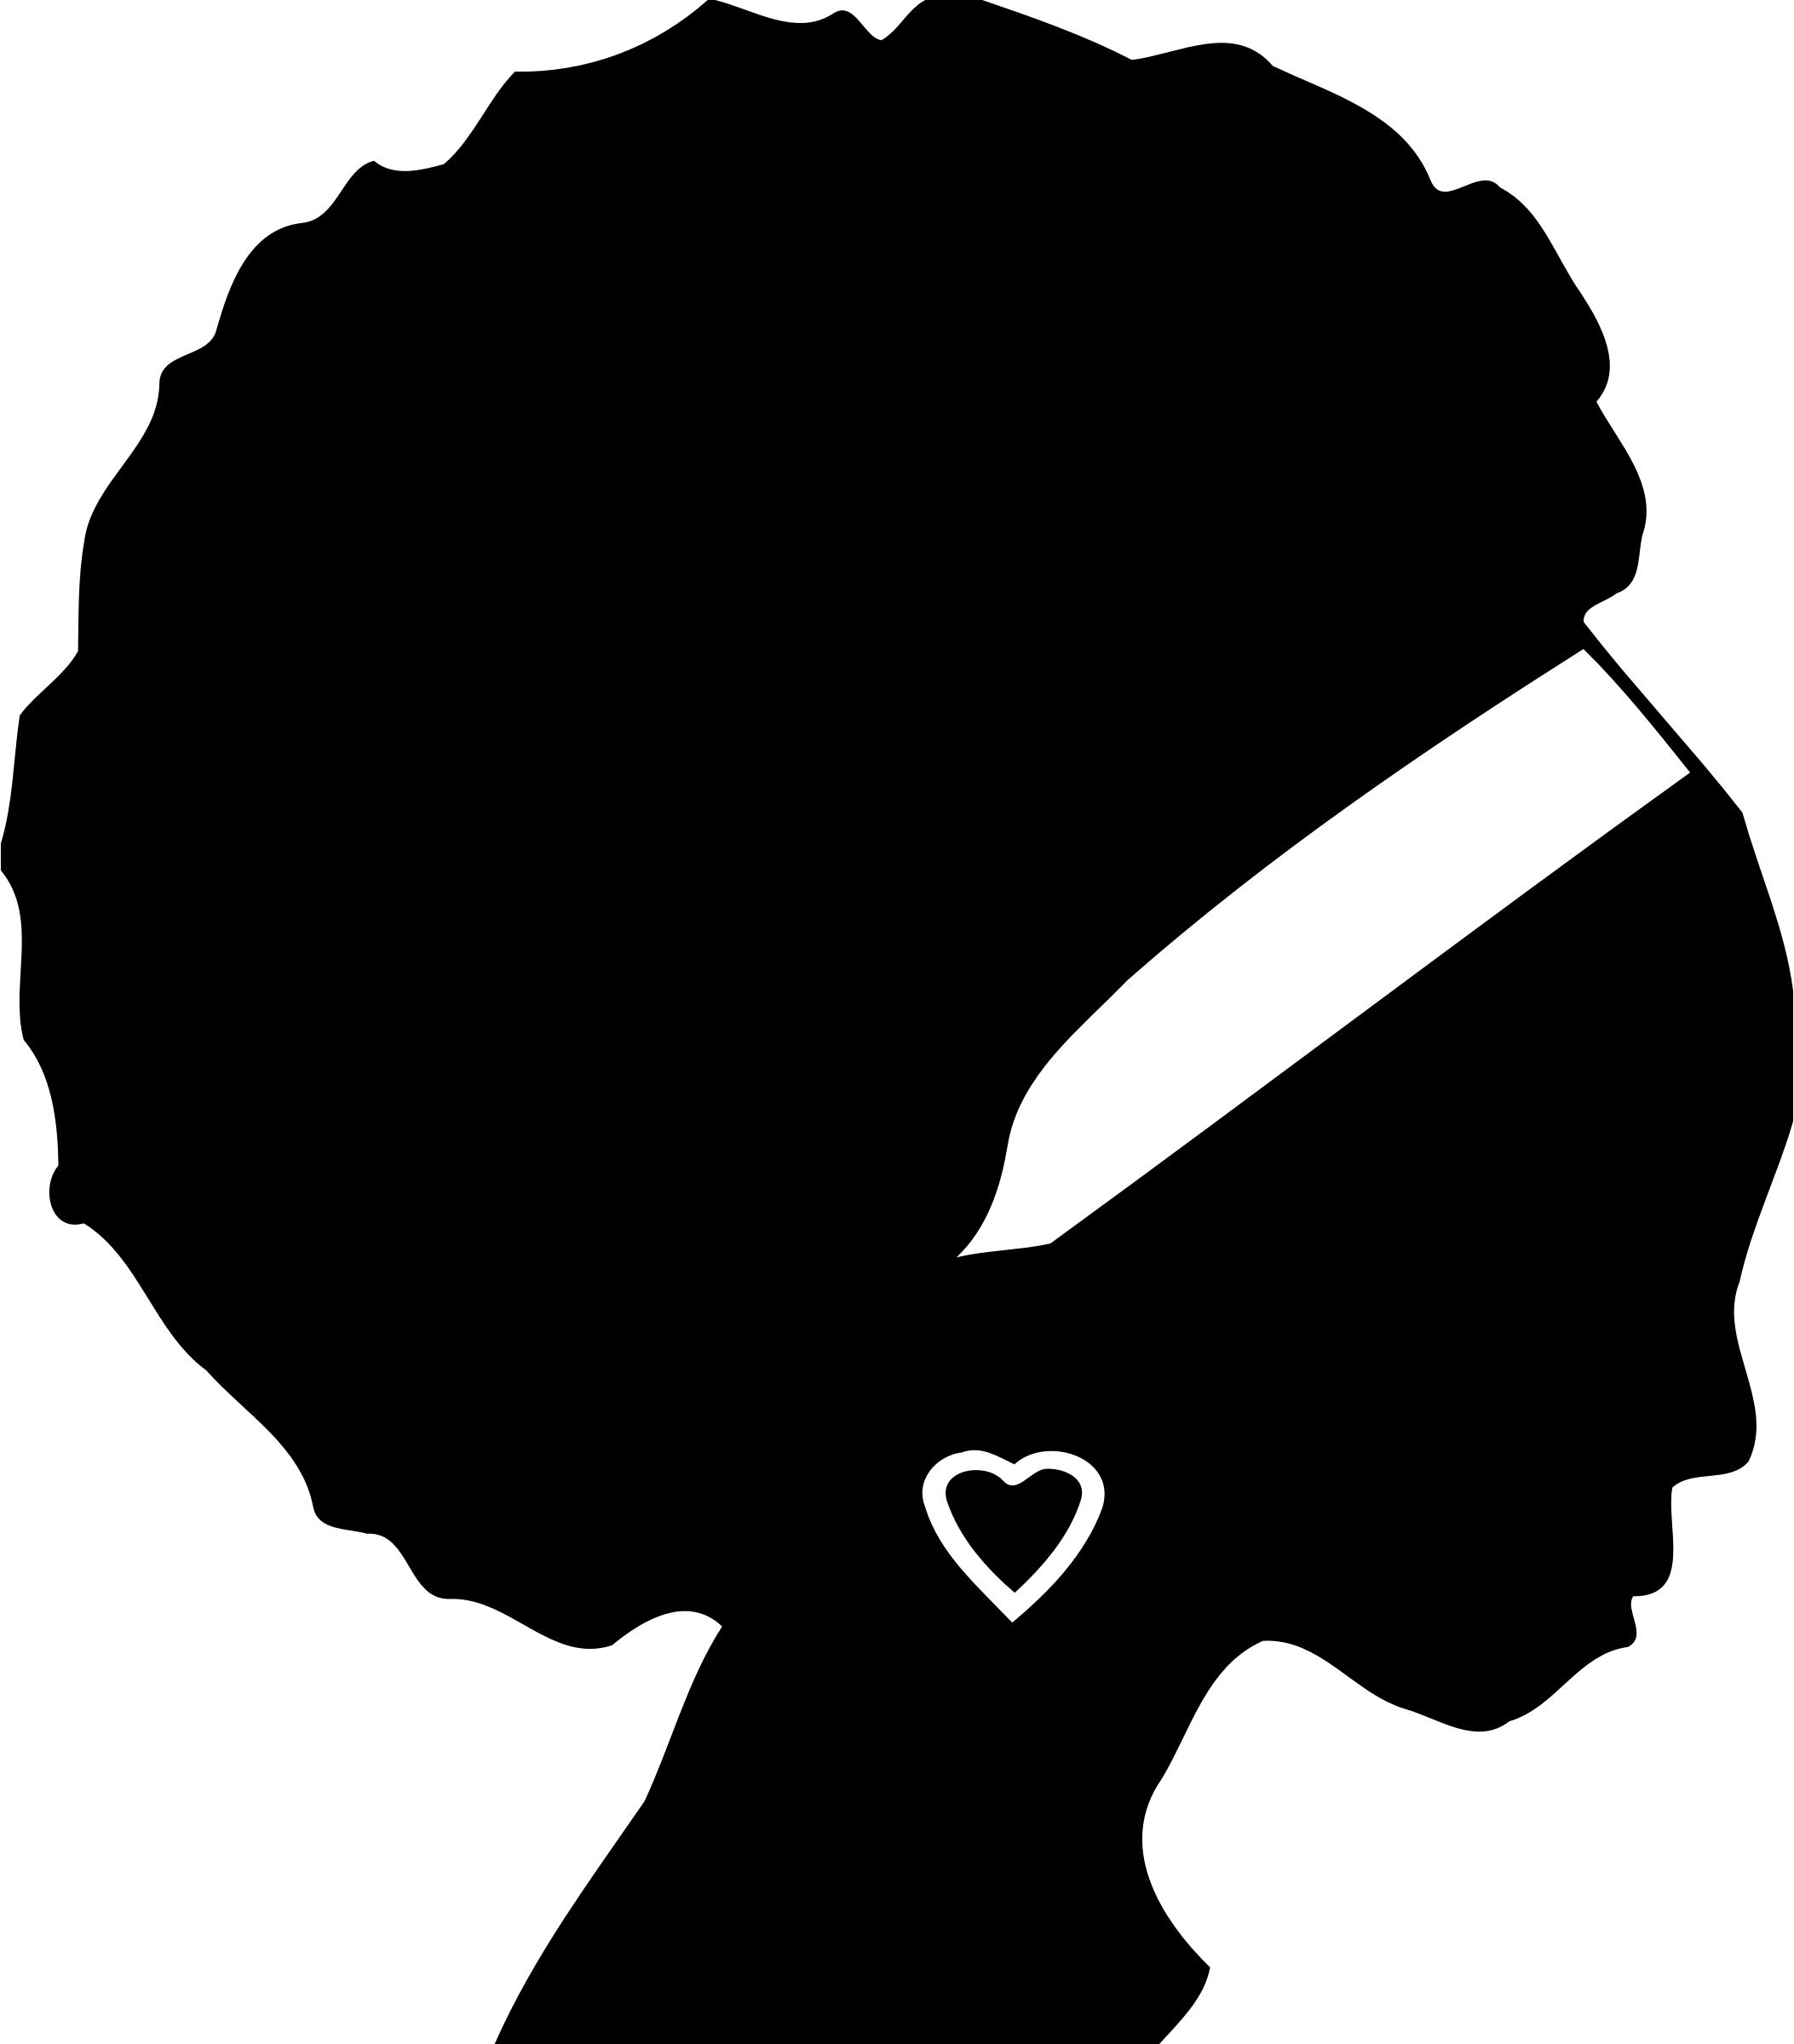 2106x2400 Free Head Silhouette Icons Png, Head S Lhouette Images